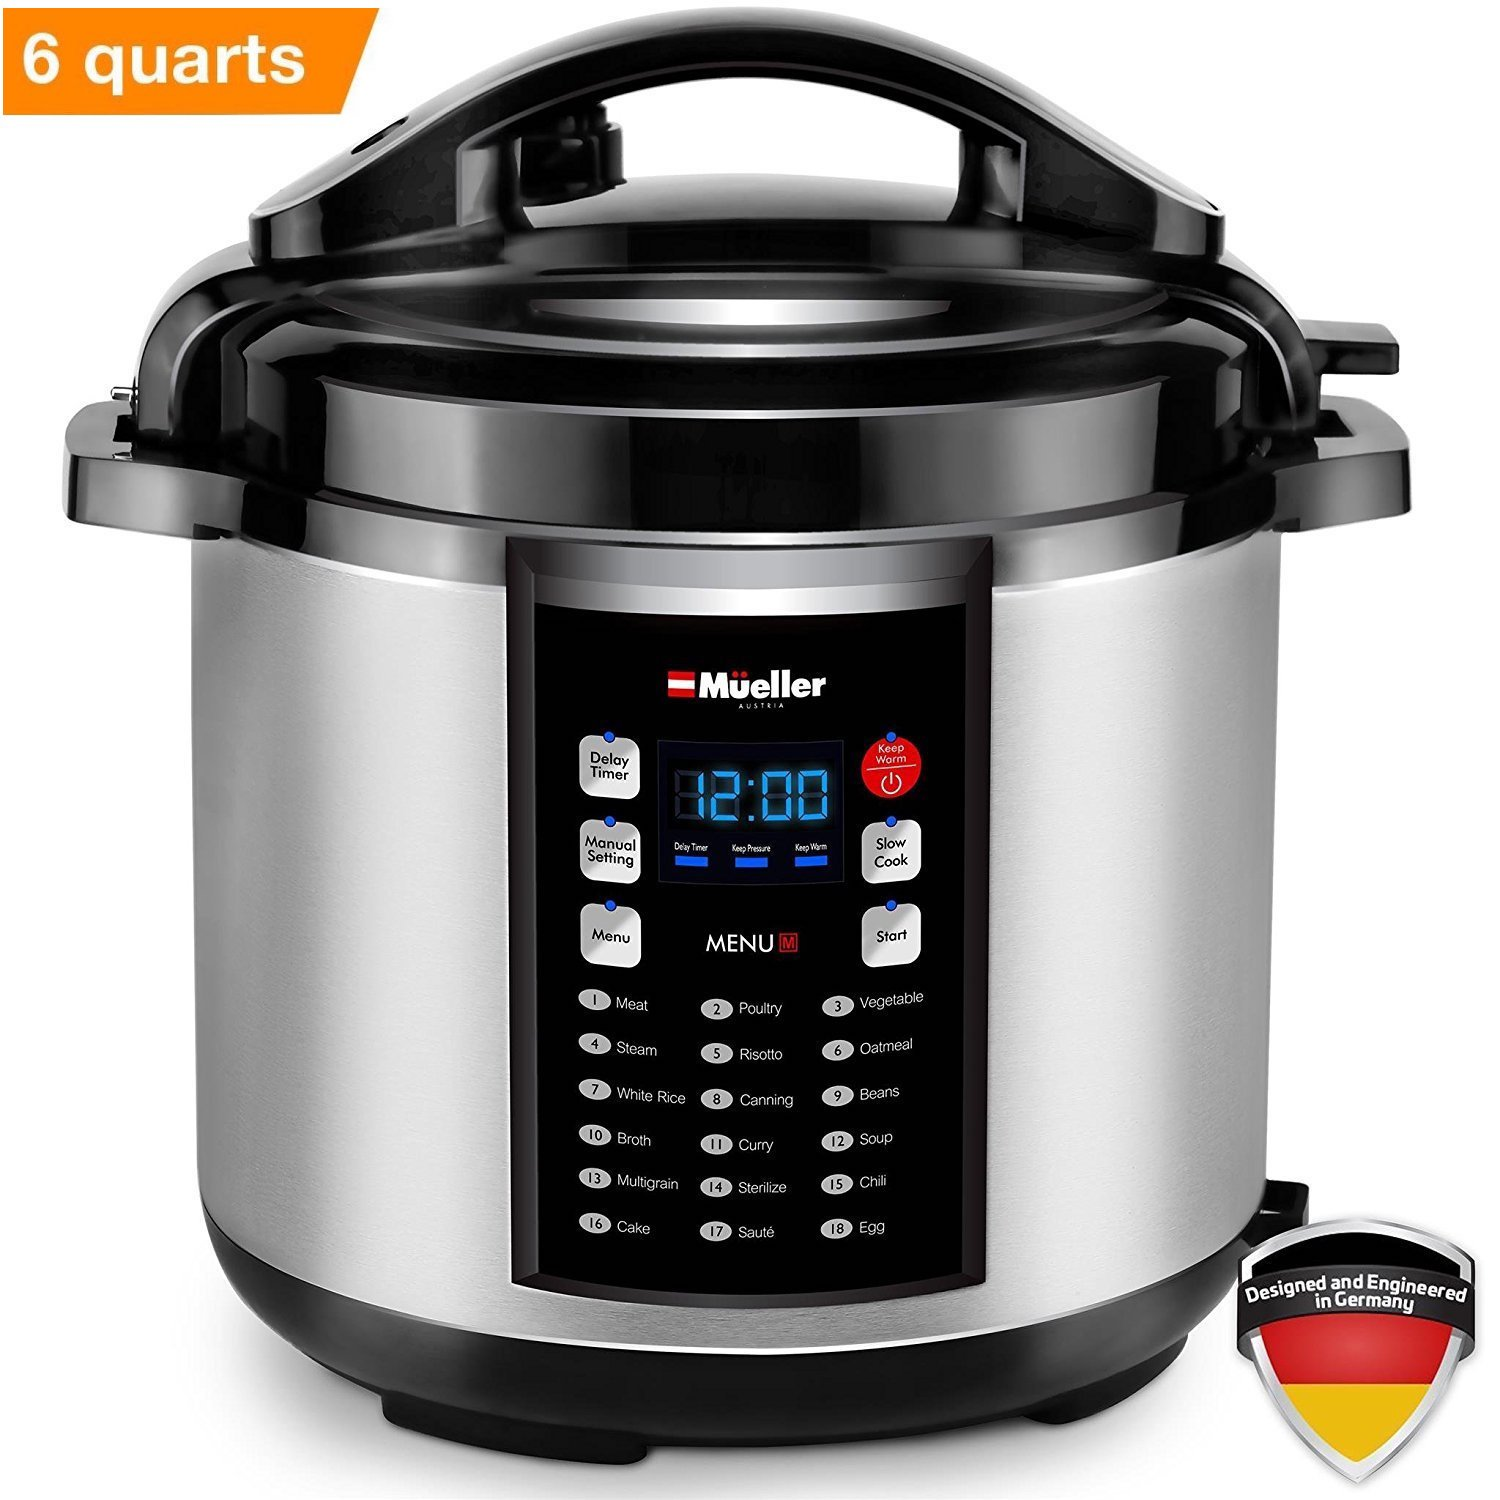 Mueller 10-in1 Pro Series 18 Smart Program Pressure Cooker | German ThermaV Even Heat Technology | 6Q/1000W Slow Cooker | Rice Cooker, Yogurt Maker, Cake Maker, Egg Cooker, Sauté, Steamer, Warmer